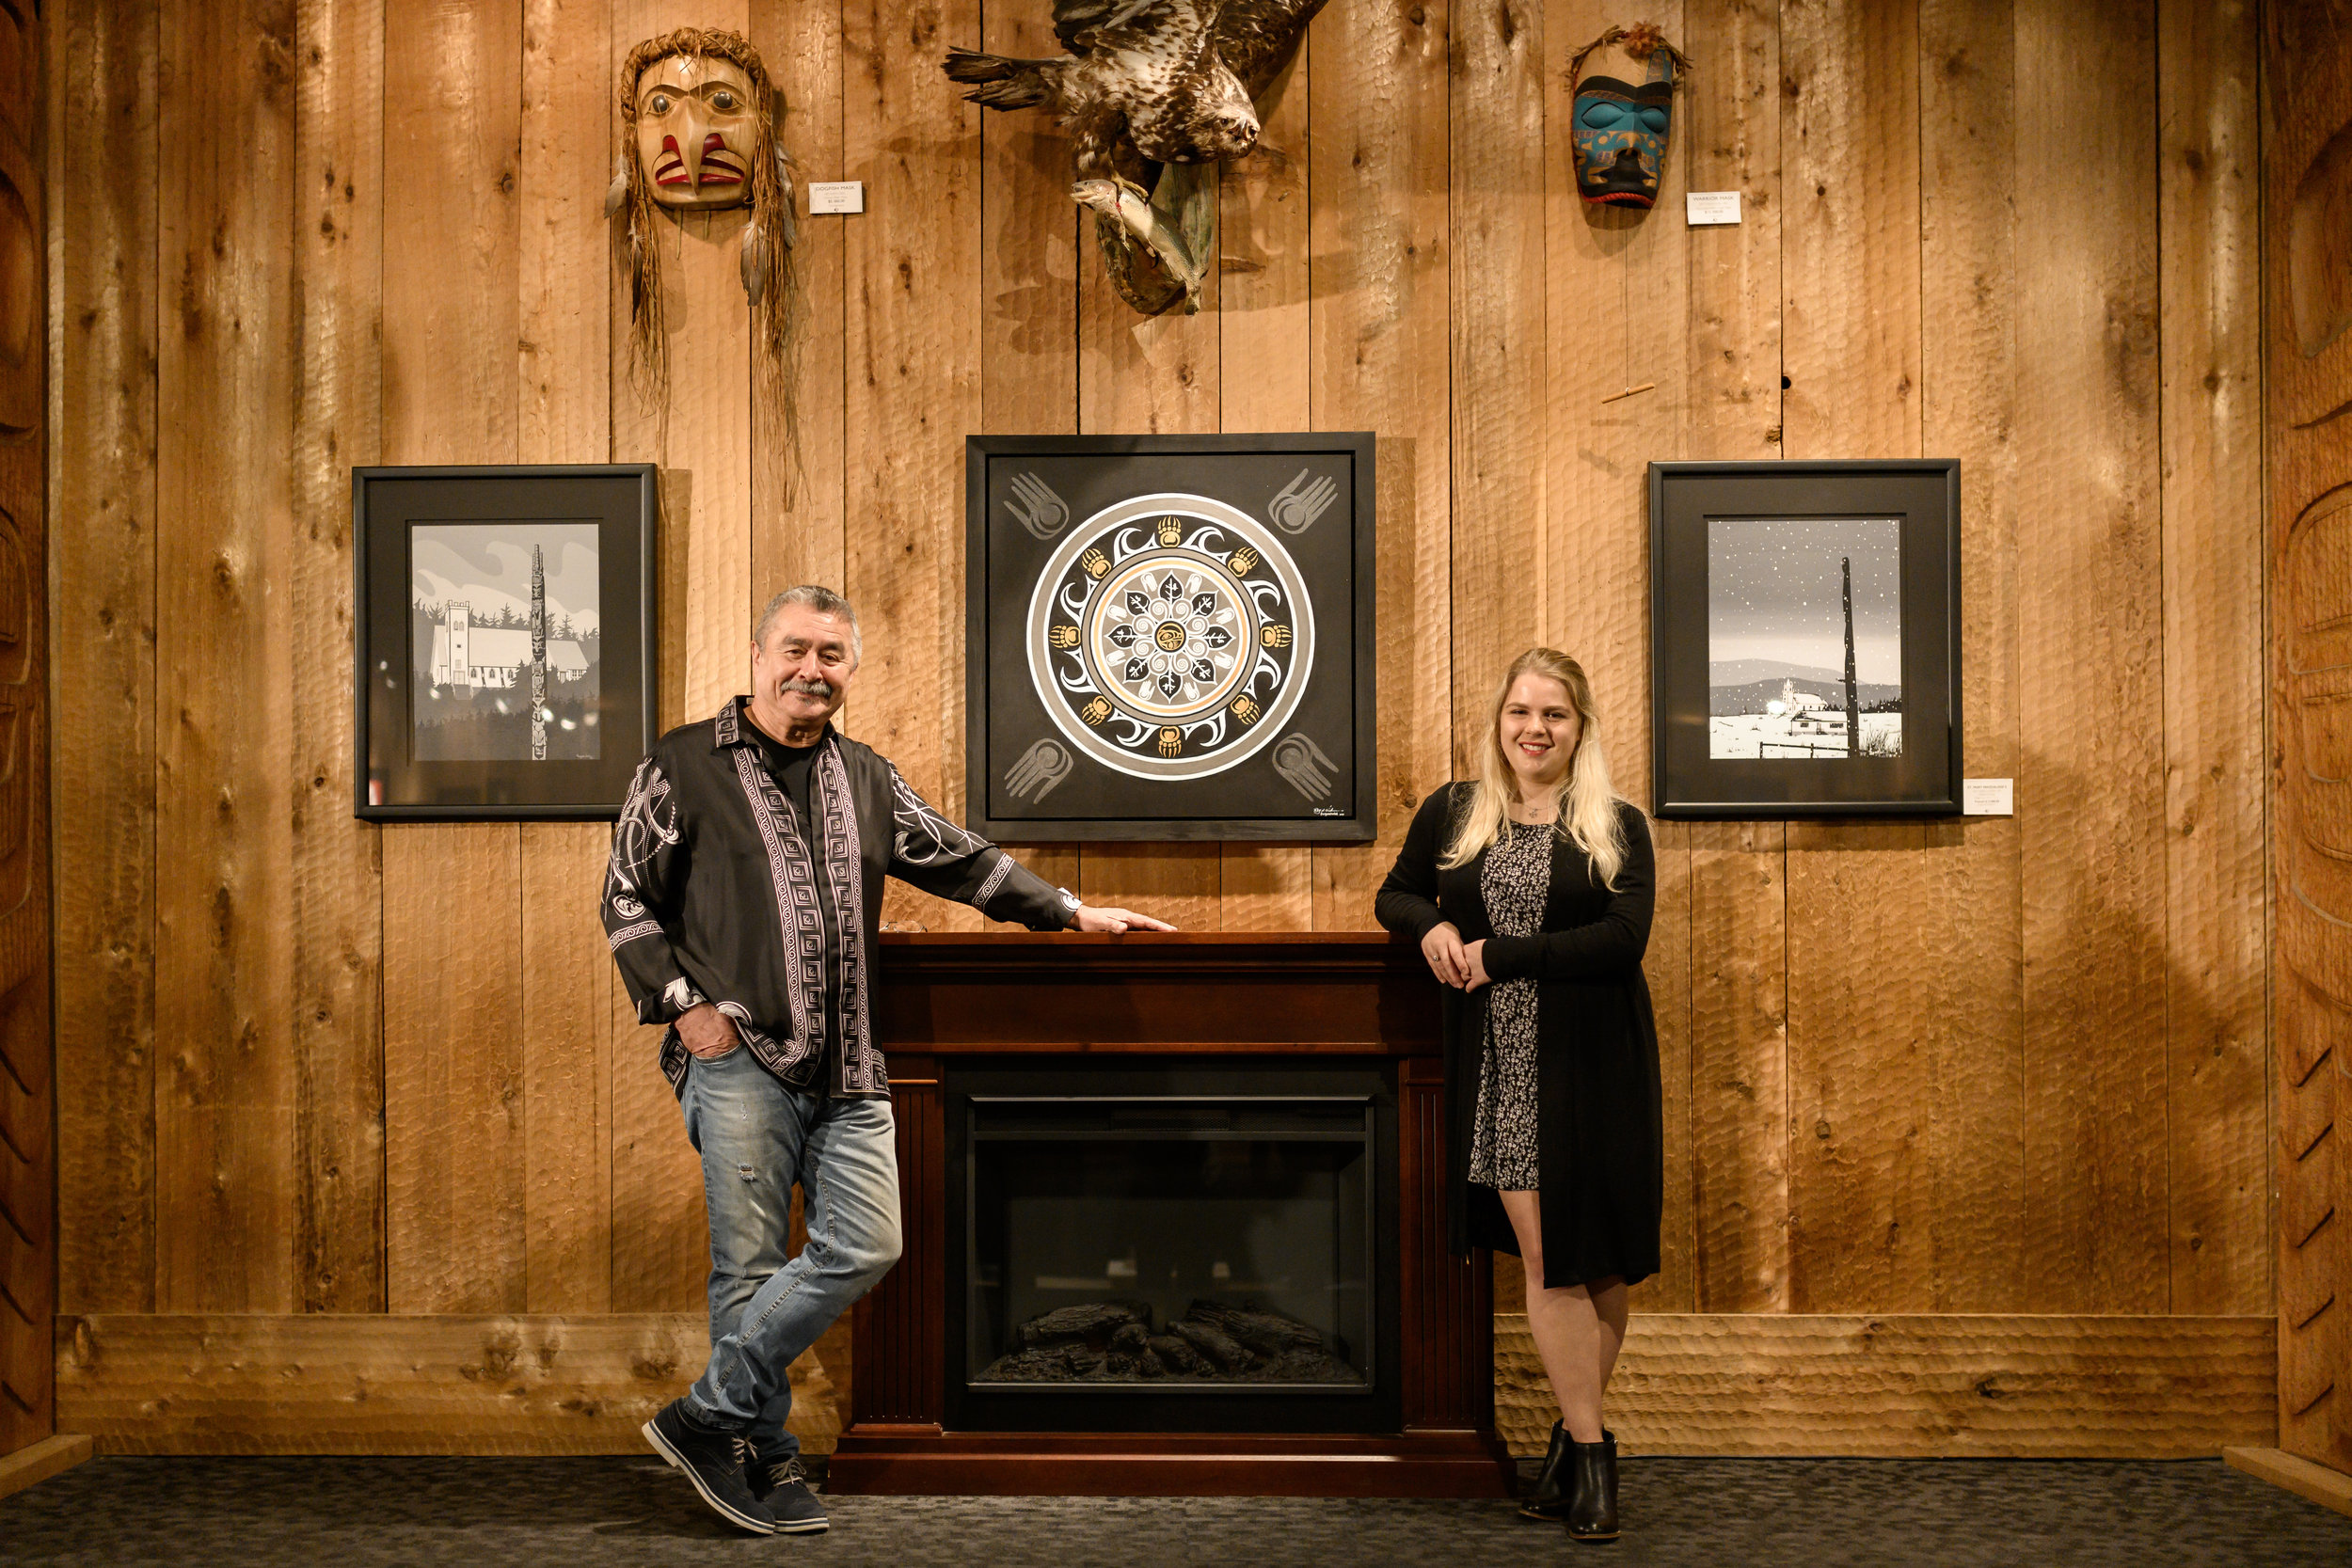 Roy-Henry-Vickers-Lizzie-Snow-fortyonehundred-Earth-Spirit-Collaborative-Original-Painting-Photo-by-Paul-Levy-Photo-Tofino-BC-Canada